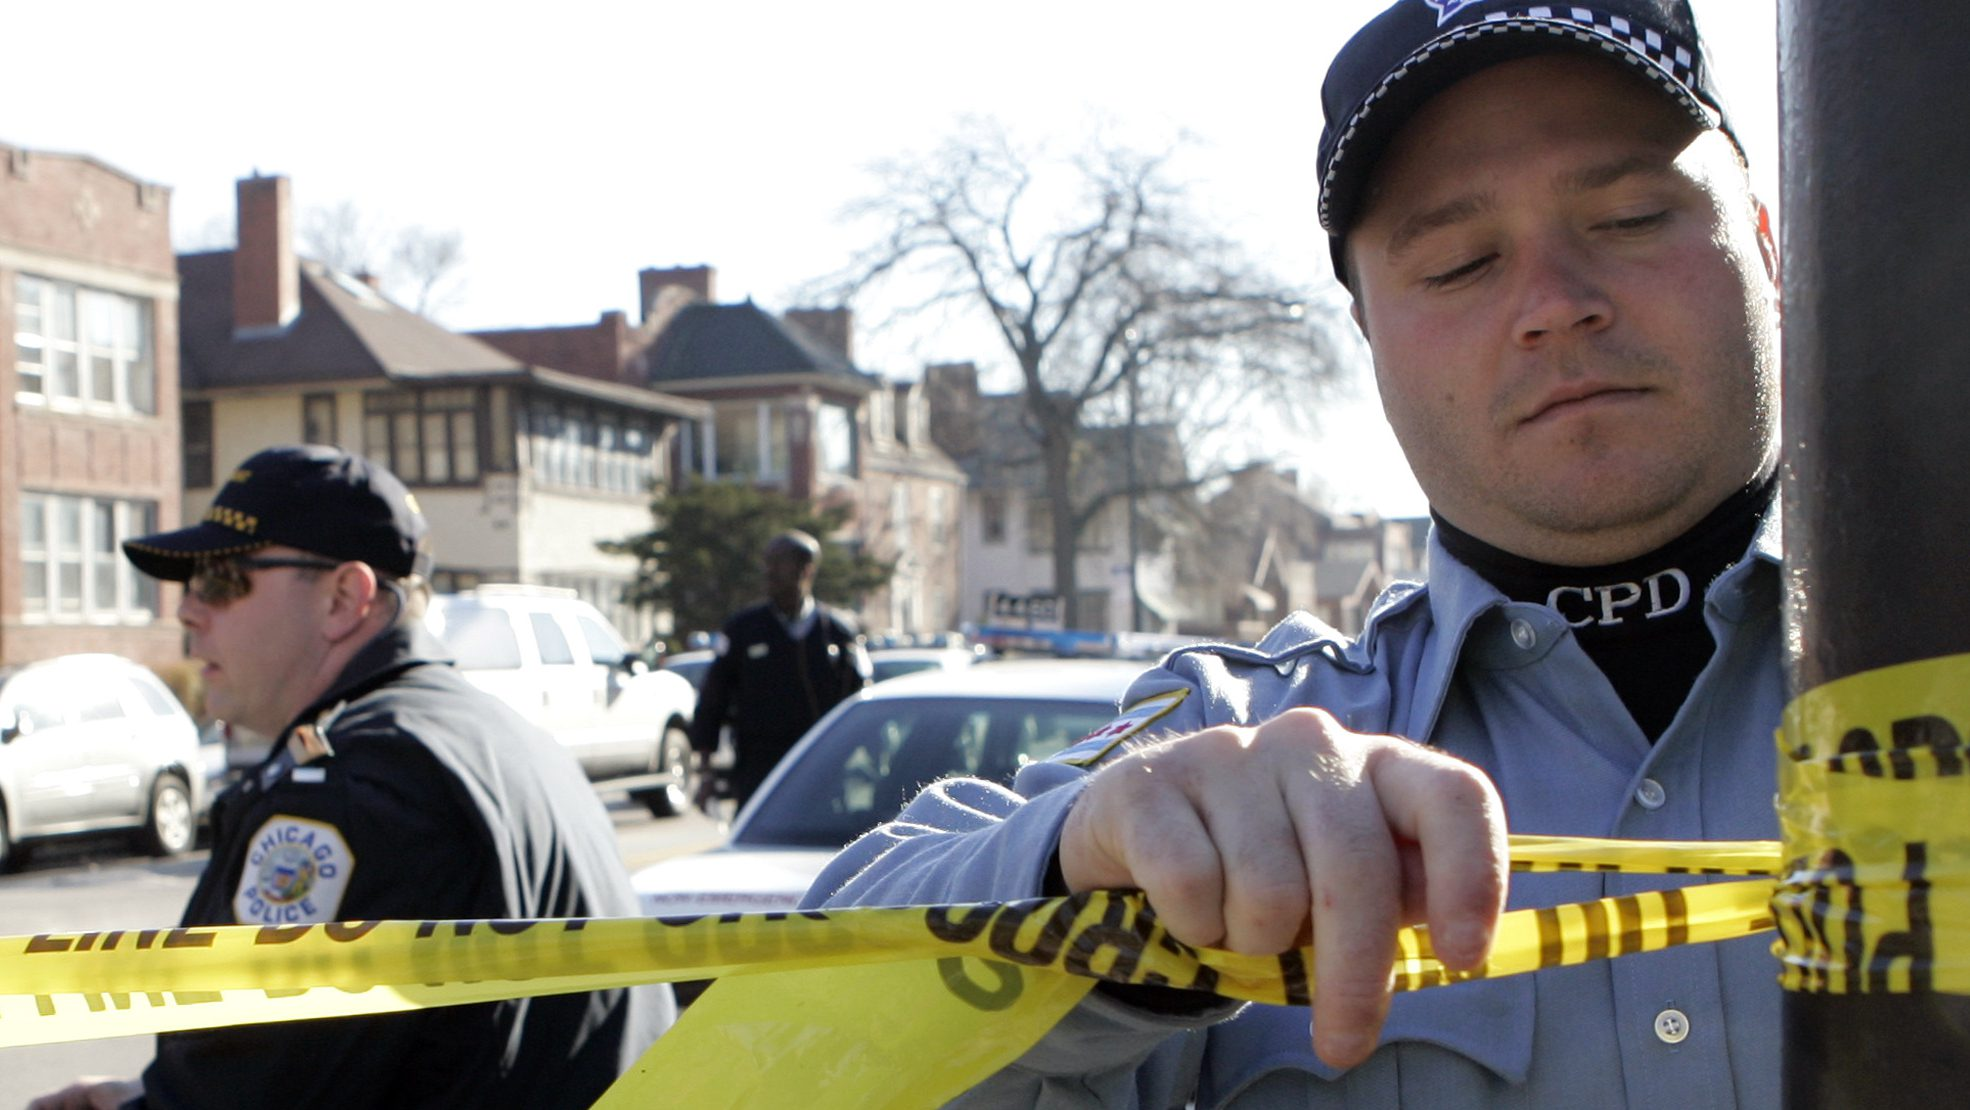 Chicago Police official re-taped a police line at apartment standoff, Thursday, Nov. 23, 2006, in Chicago. Two women were taken hostage inside their Chicago apartment building early Thursday, sparking a police standoff that stretched more than 10 hours on Thanksgiving.(AP Photo/Nam Y. Huh)